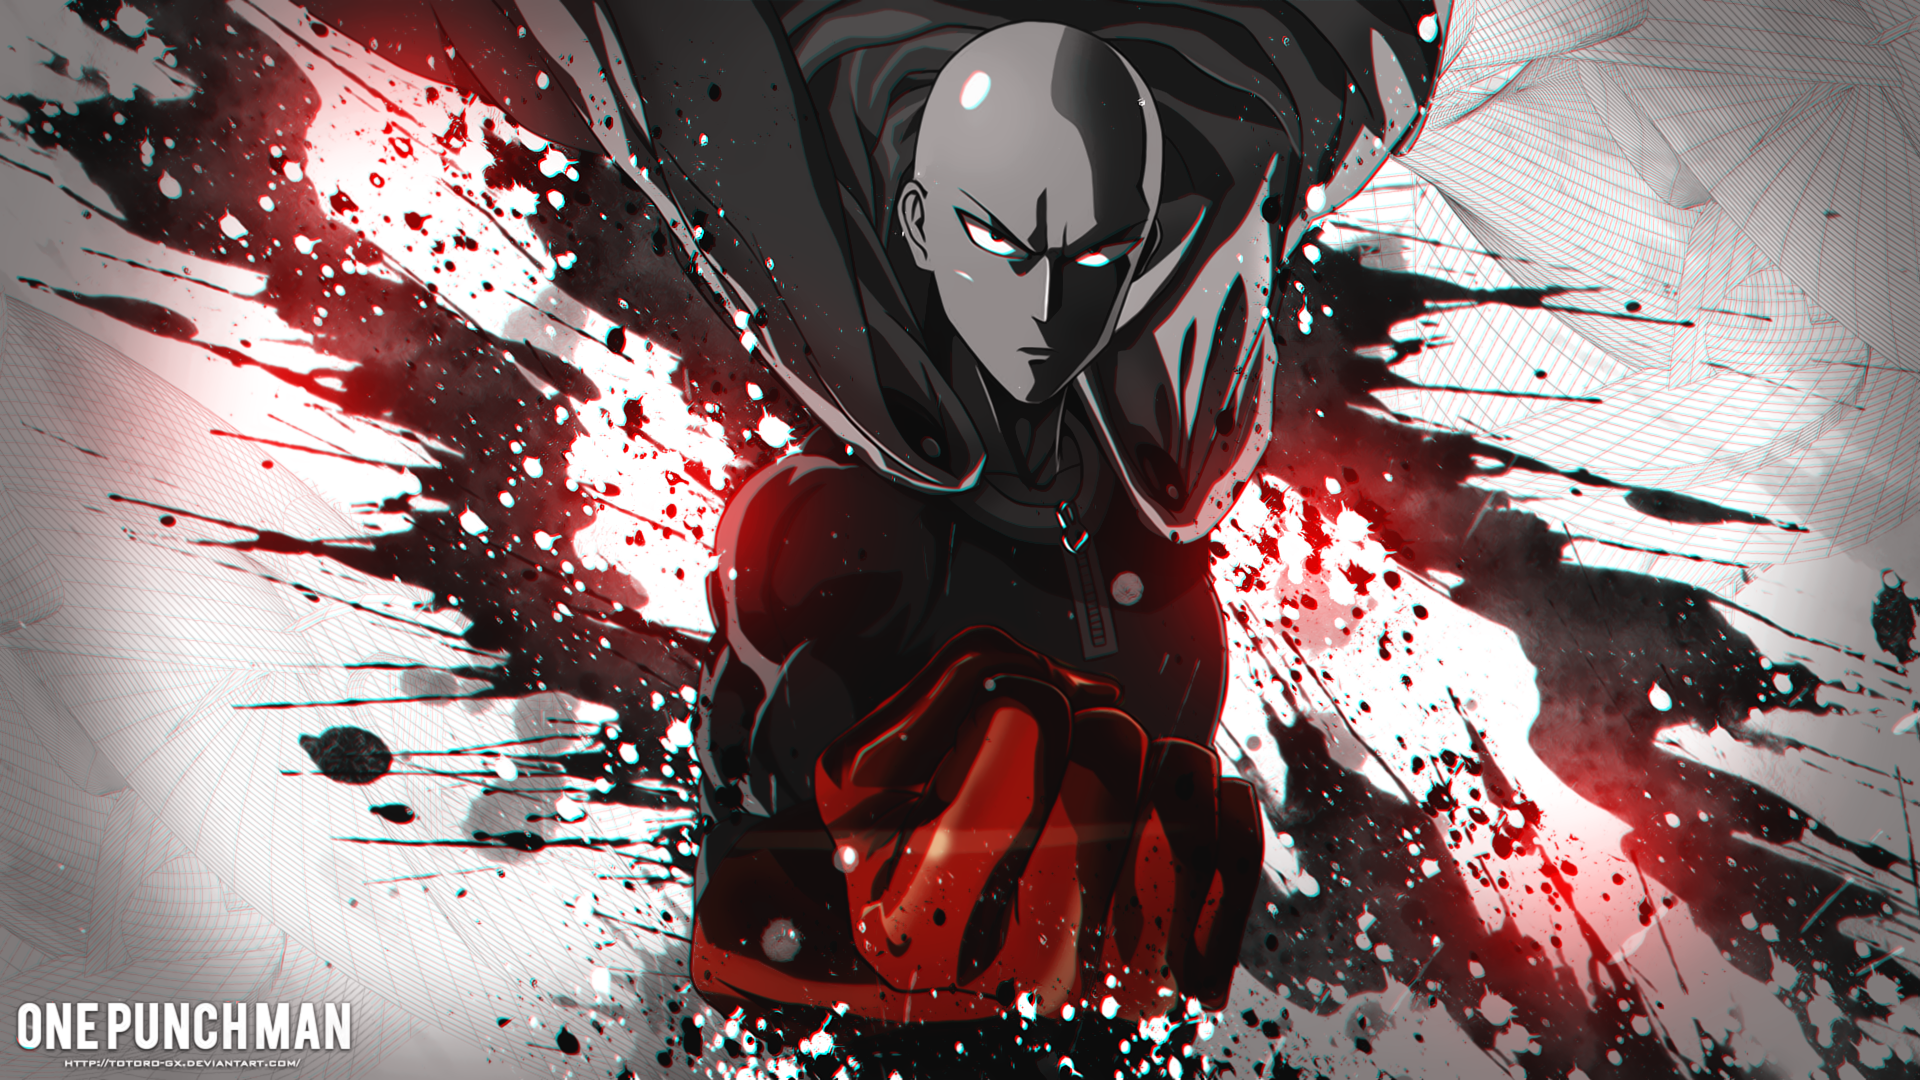 Epic Anime Wallpaper One Punch Man